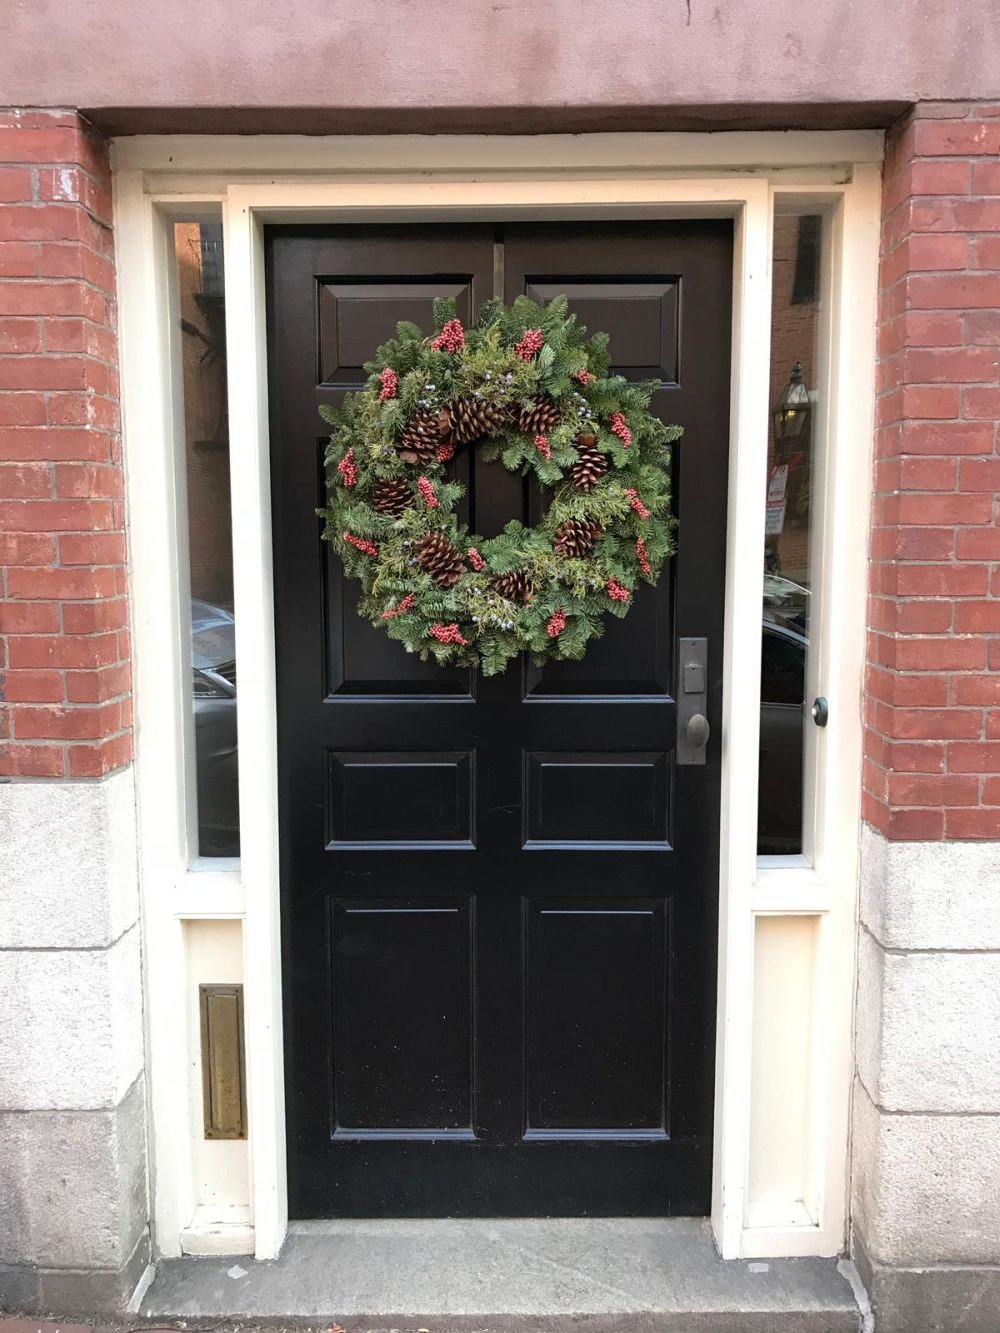 What's nice about a Christmas wreath is that you don't have to overthink it. The simple ones are plenty charming